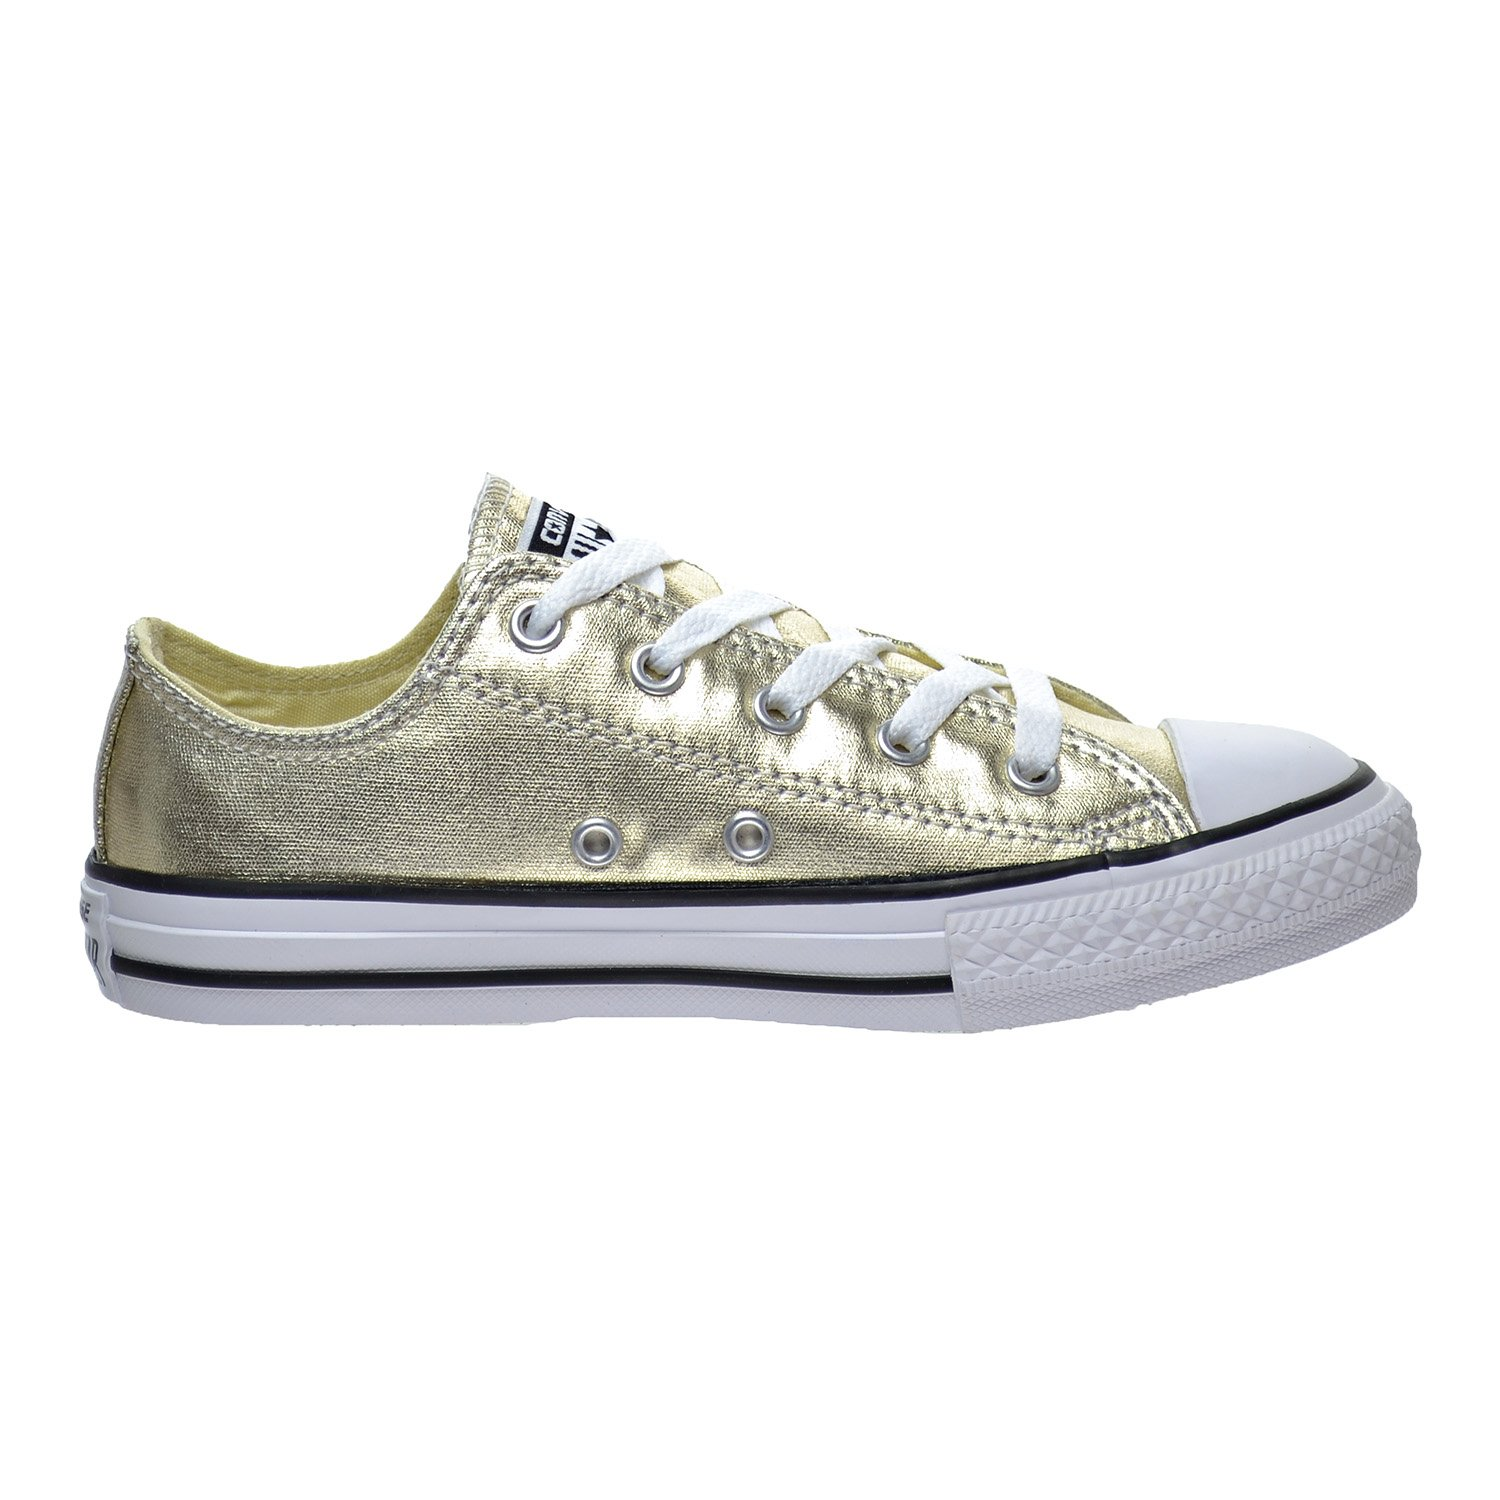 a21a299fd5549 Converse Chuck Taylor All Star Kids Shoes Metallic Gold White Black  Sneakers (1)  Buy Online at Low Prices in India - Amazon.in